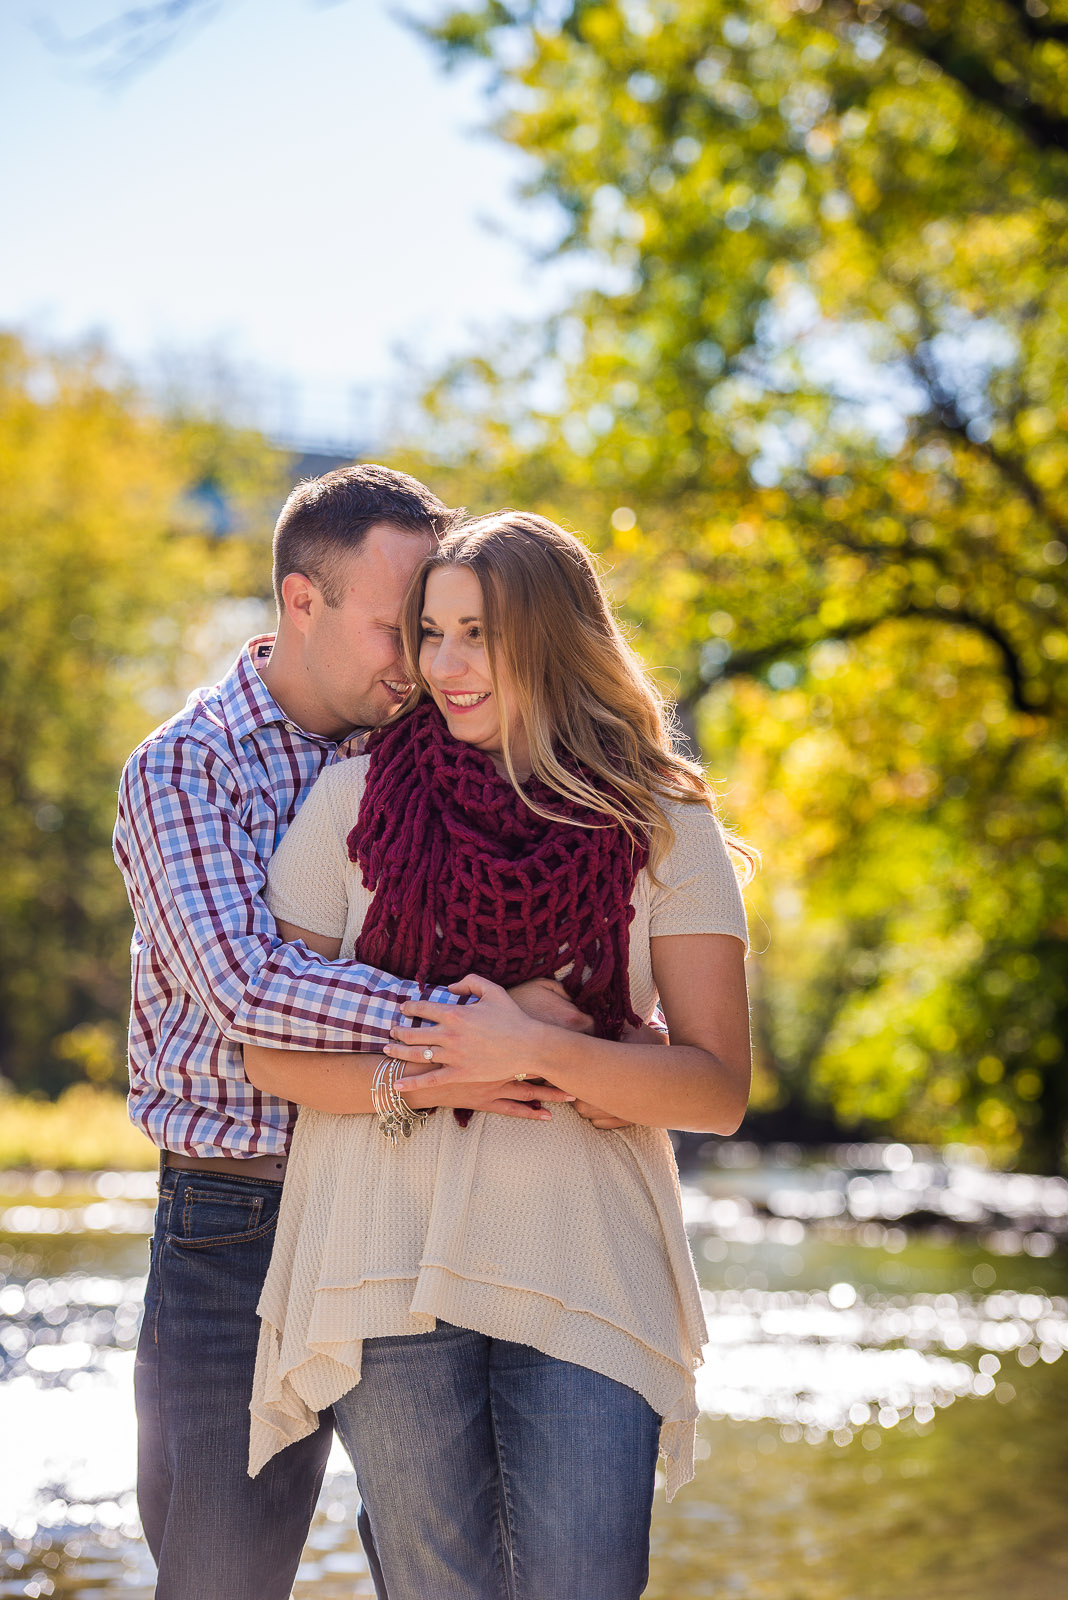 Eric_and_Christy_Photography_Blog_Megan_Nate_Engagement-14